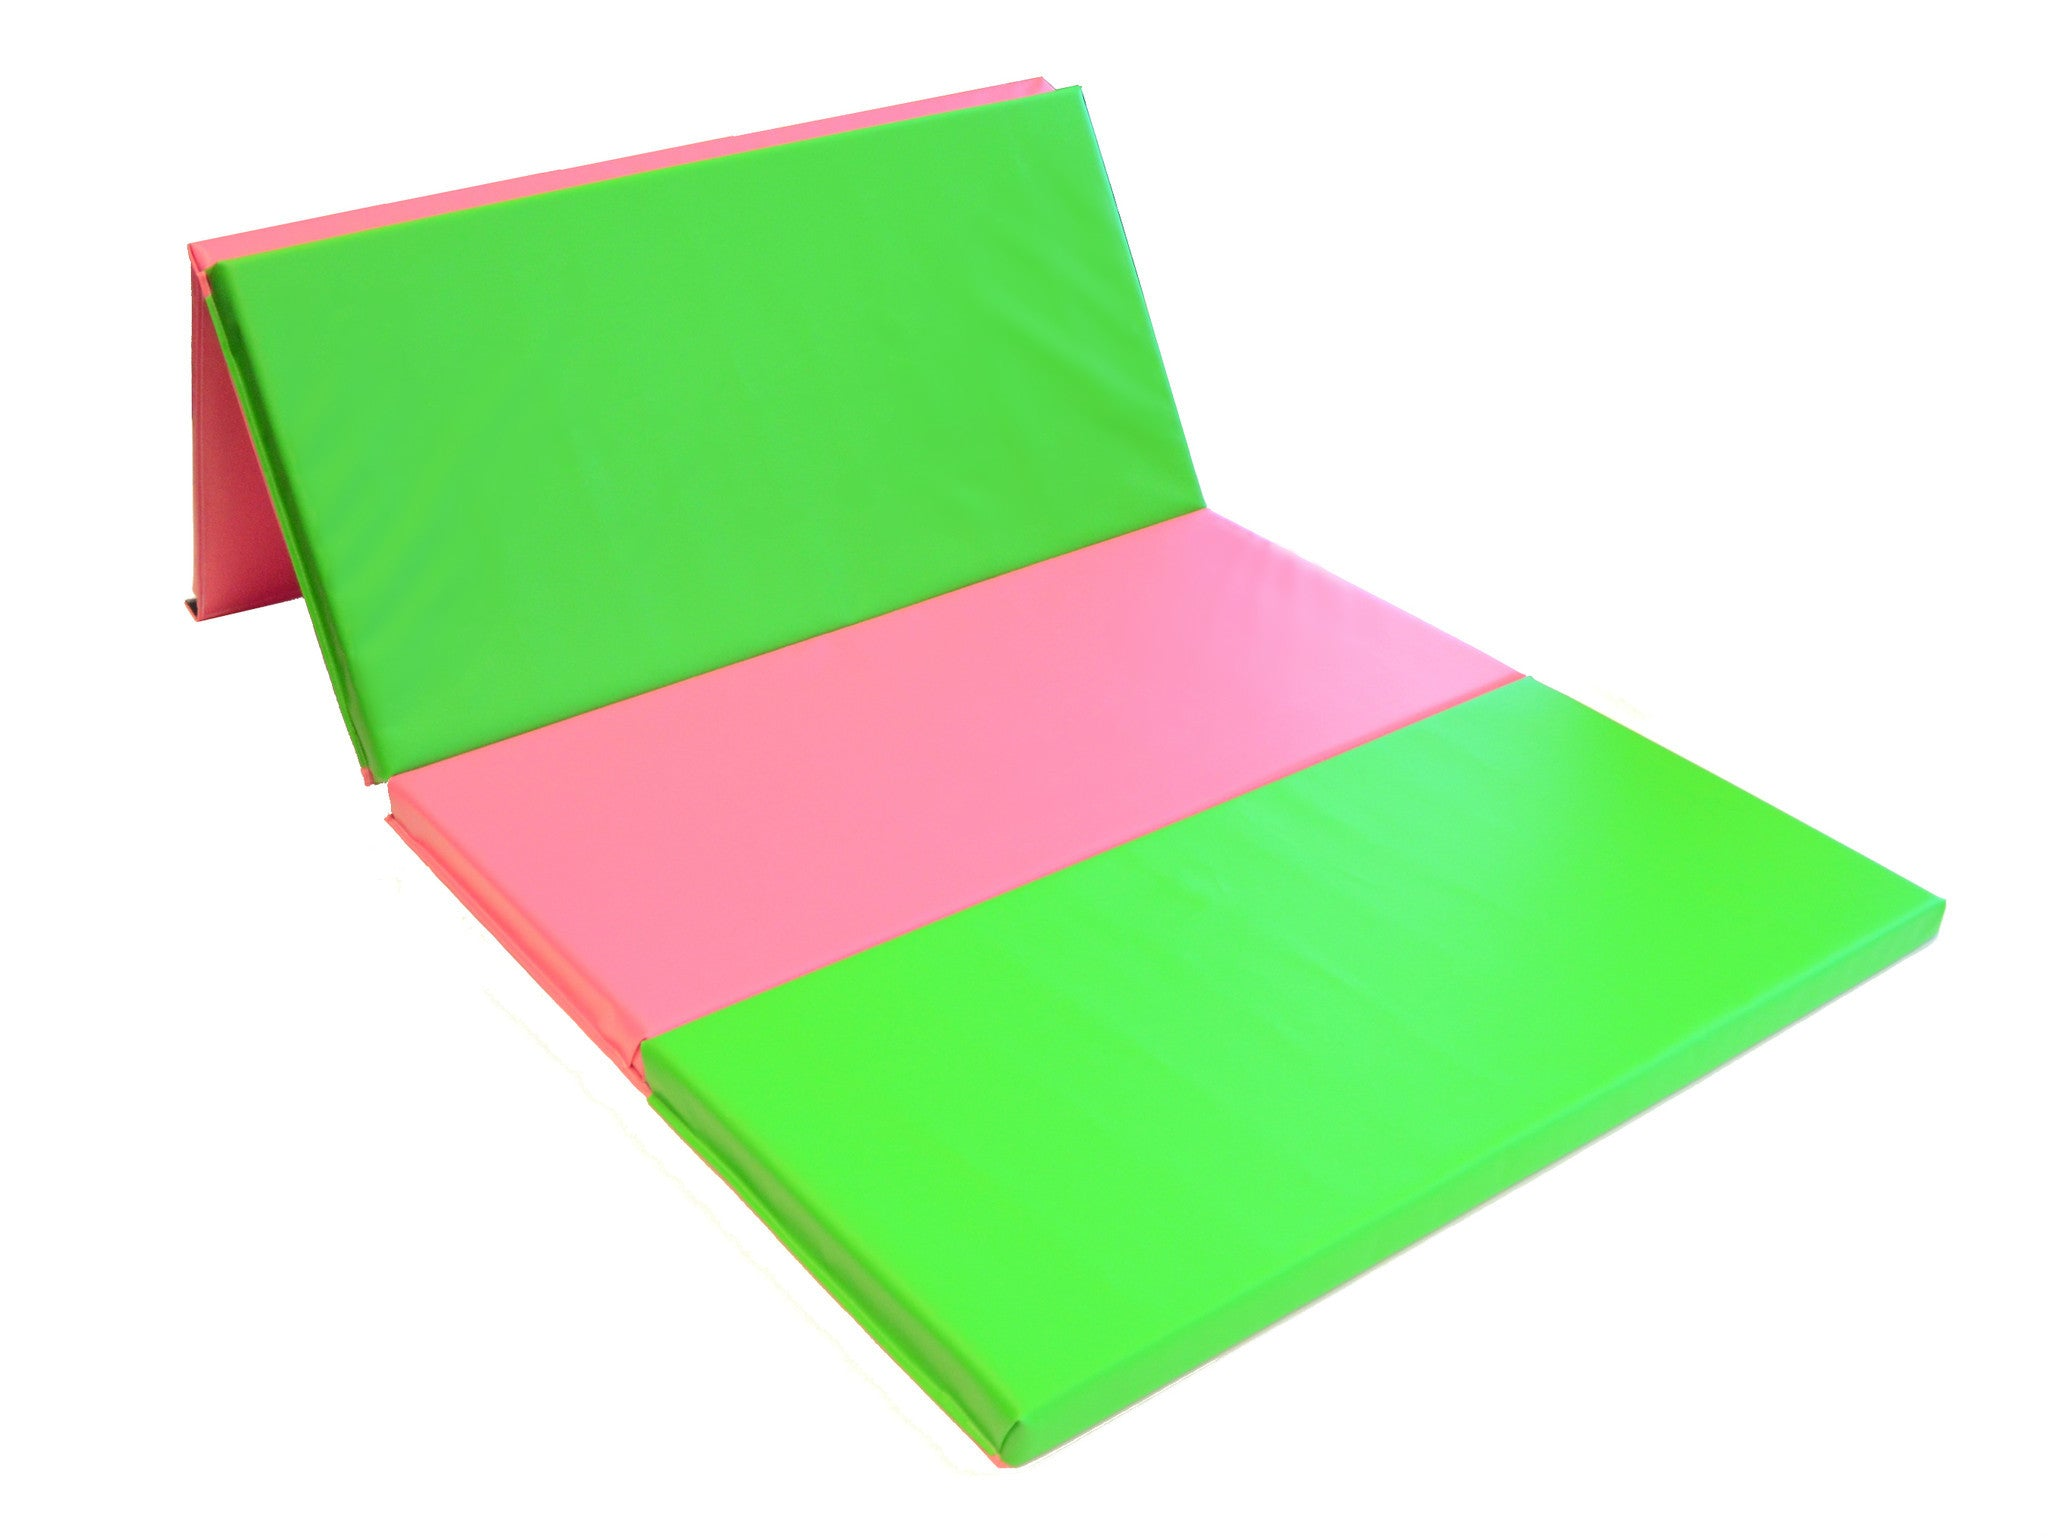 Green and Pink Tumbling Mat